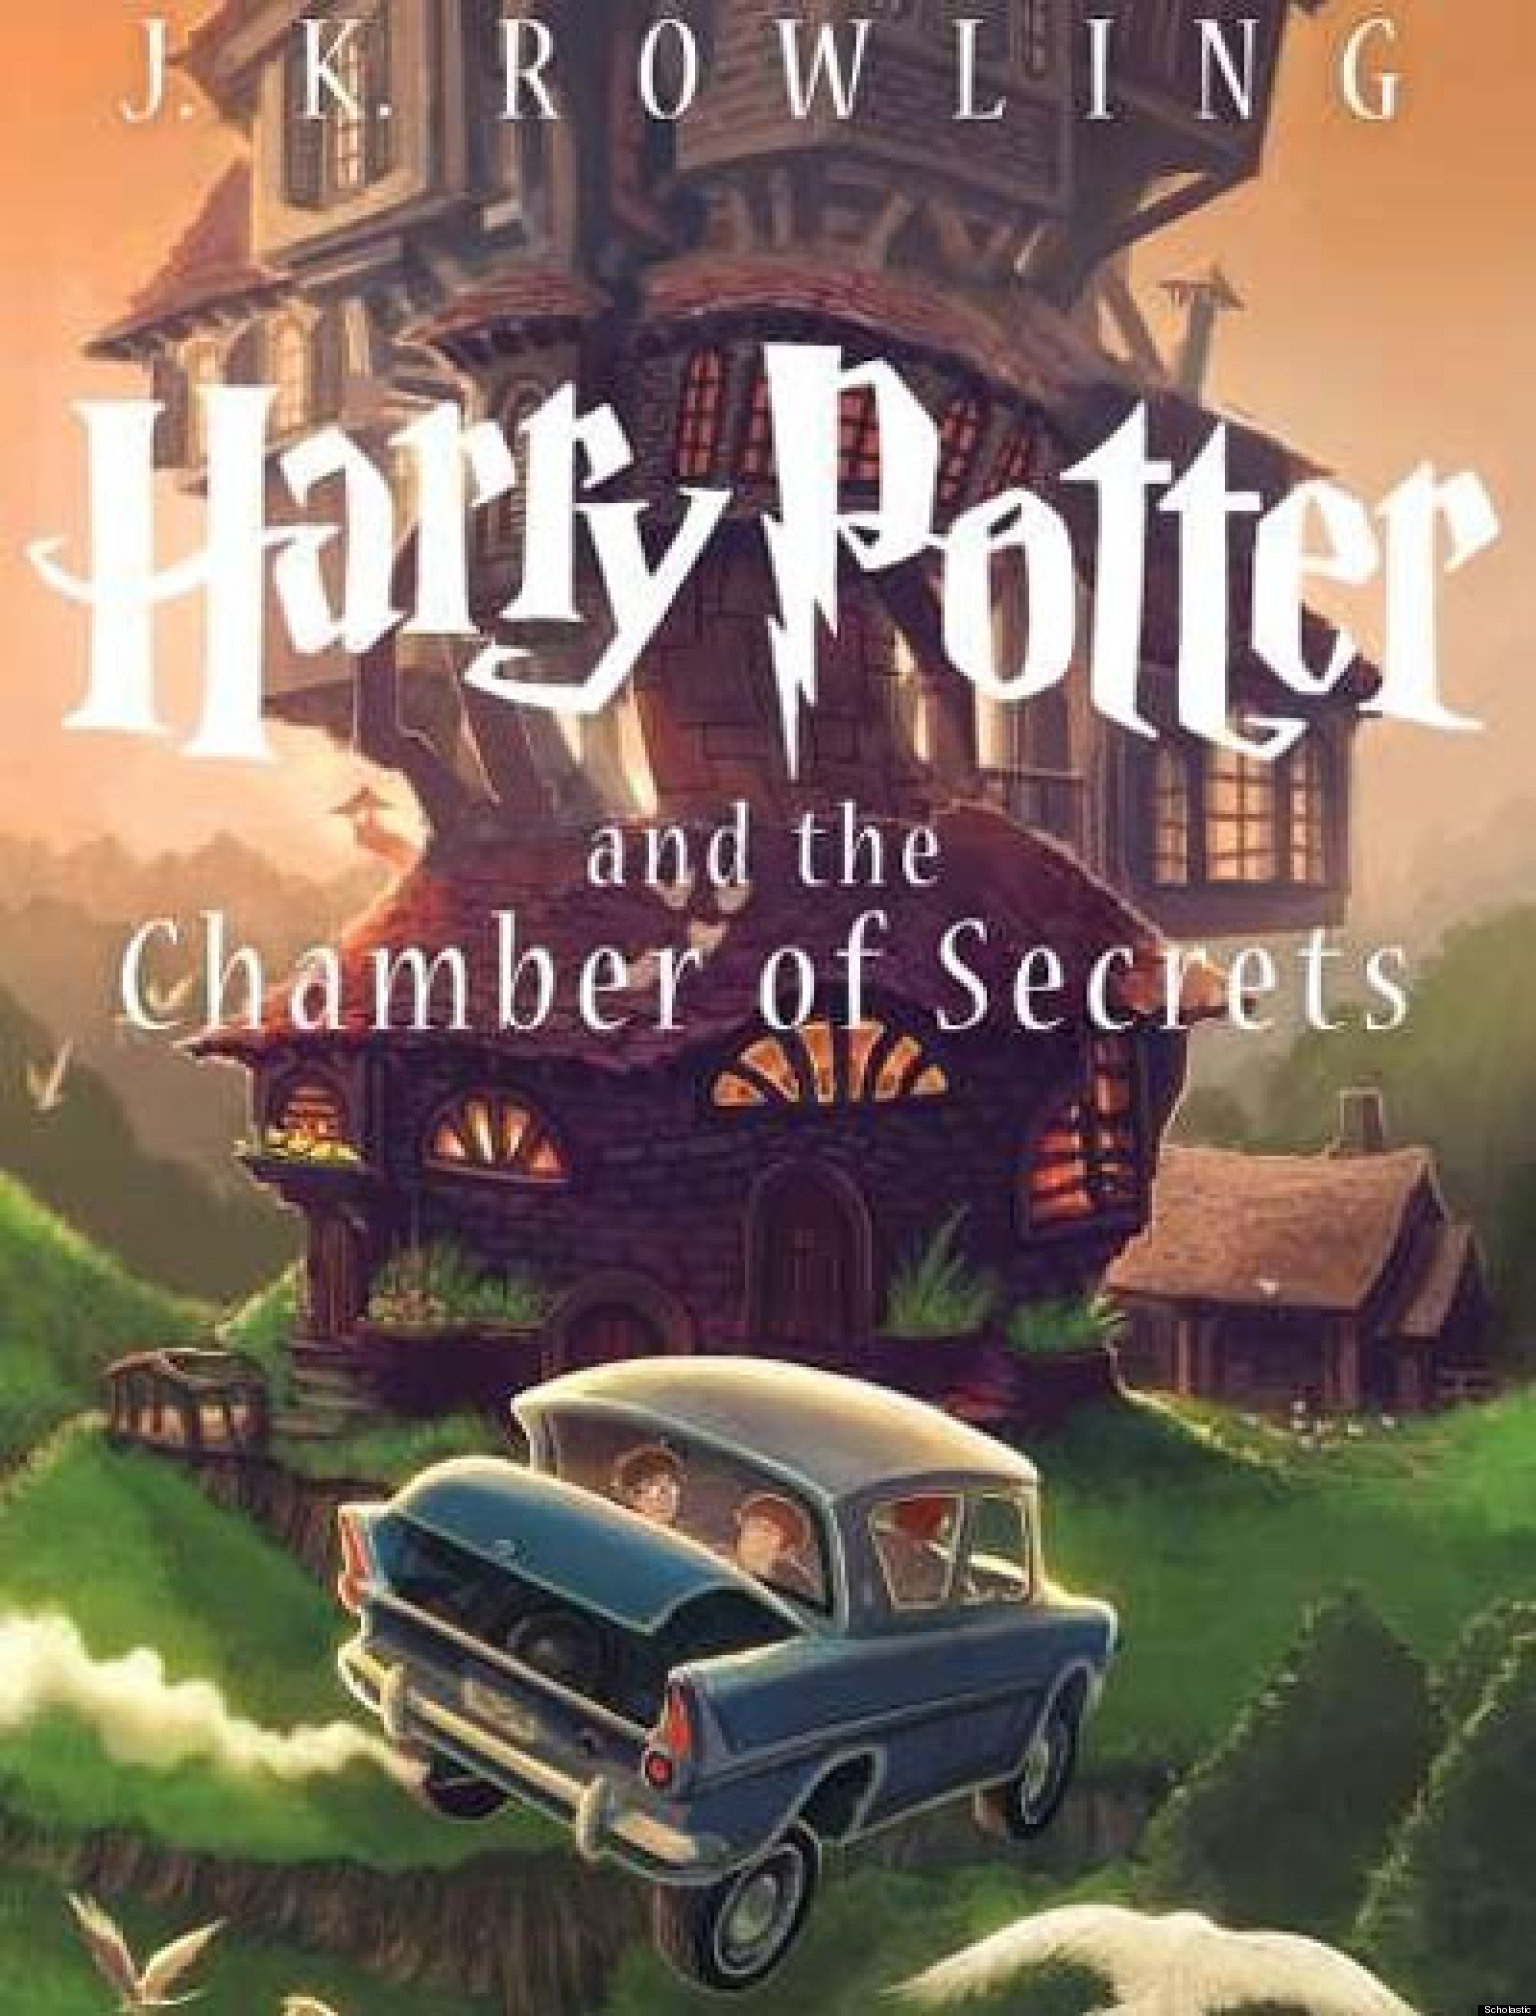 Harry Potter Book Cover Country : New harry potter book cover and other things we re